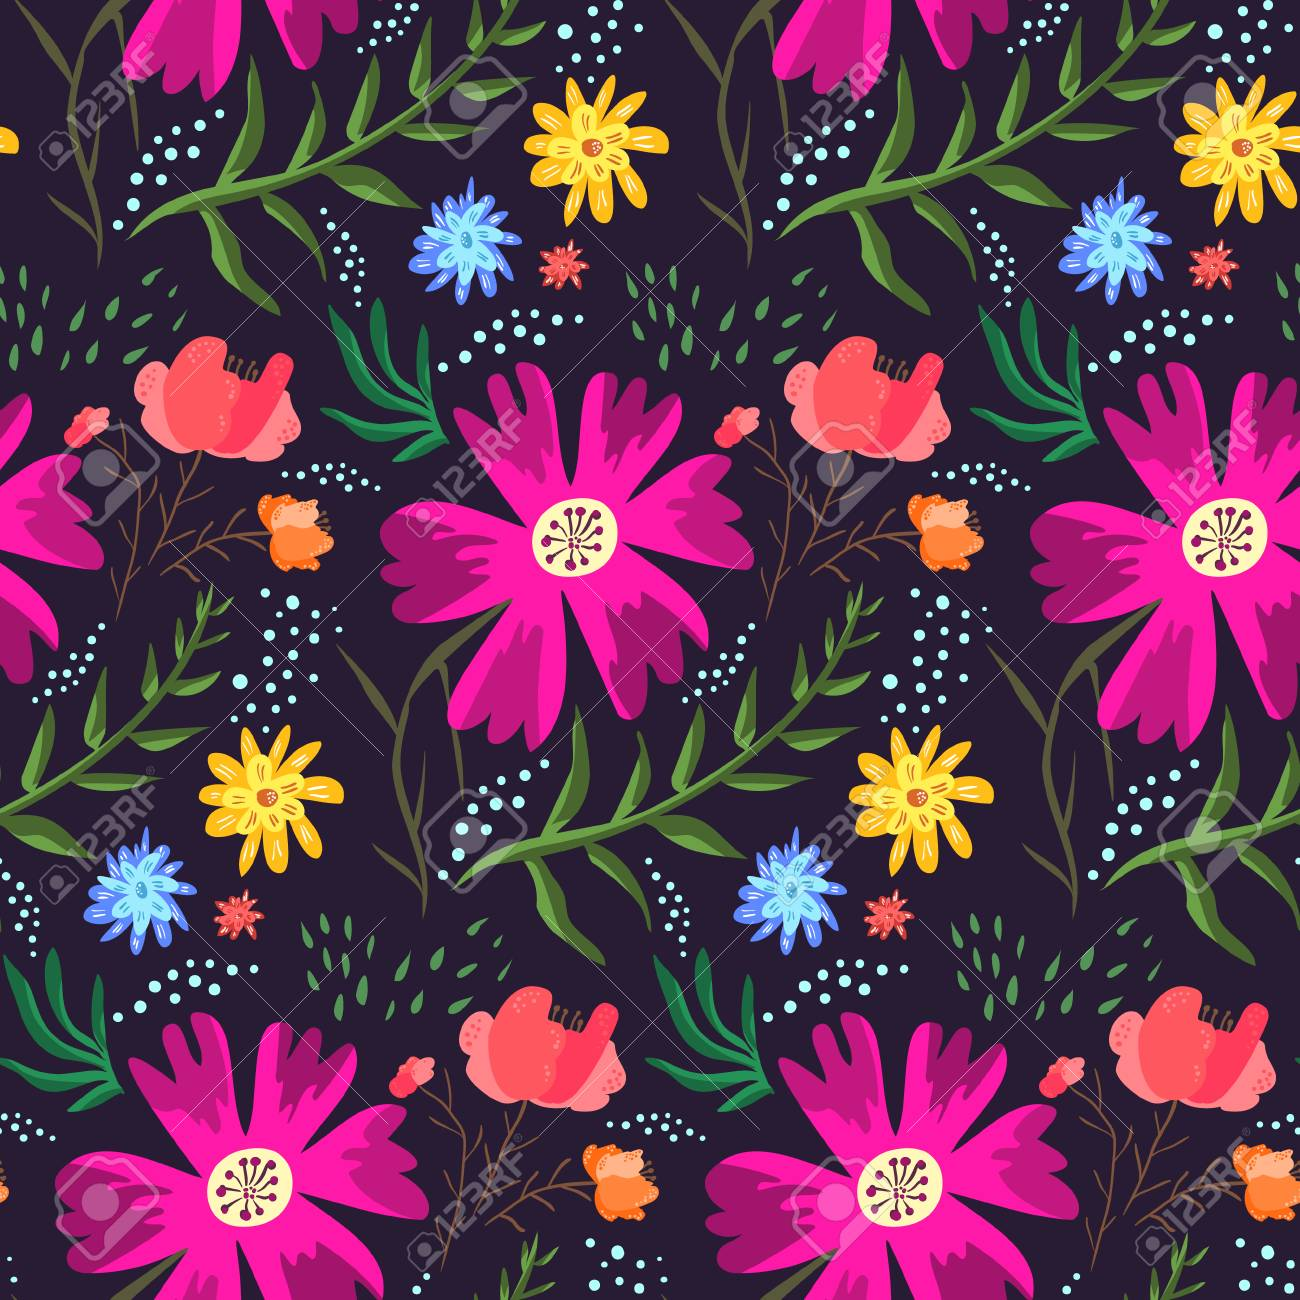 Contrast floral summer seamless pattern of rich colors. Bright cartoon hand drawn texture with pink, blue and orange flowers, leaves, waterdrops for textile, wrapping paper, print design, surface - 99909168